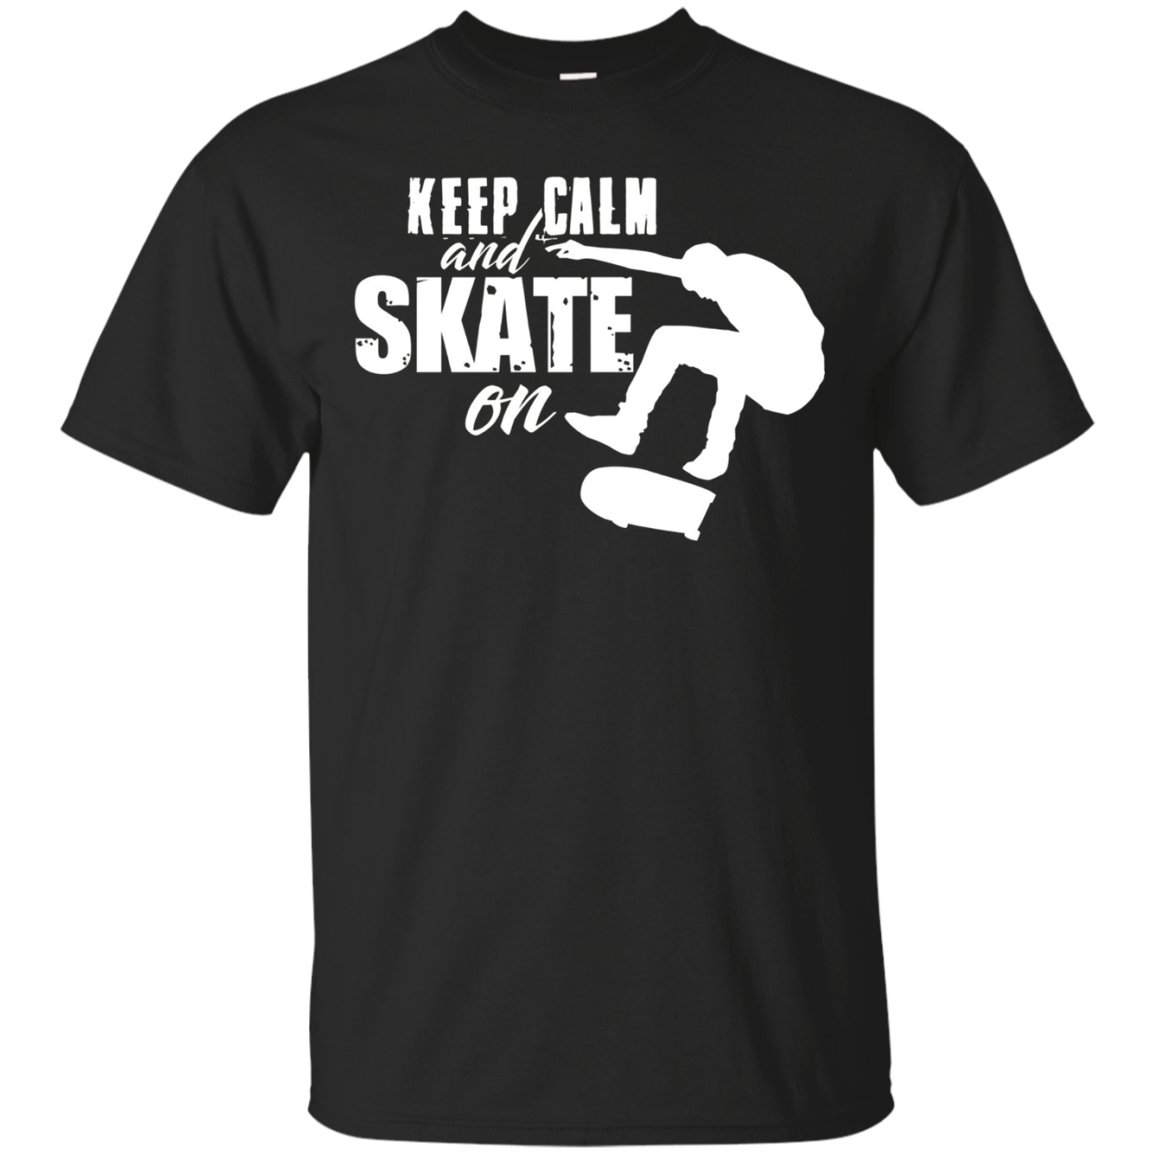 Keep Calm and Skate On Skateboarding Tee Skateboard Riders